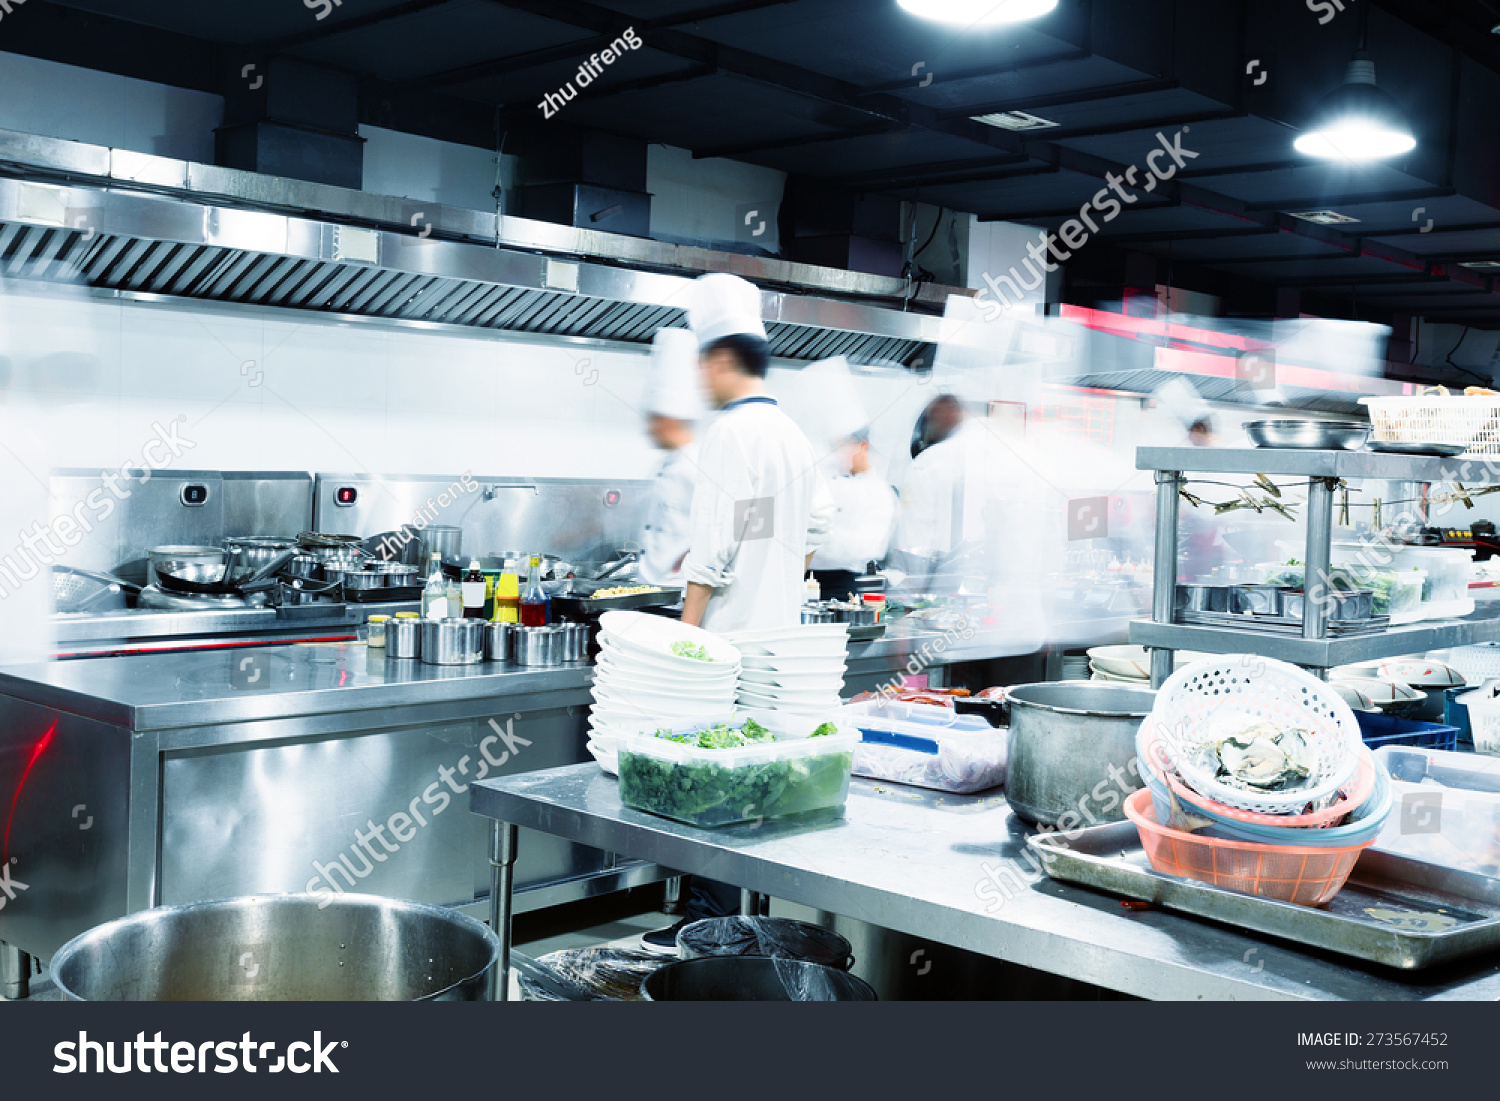 Modern Kitchen Busy Chefs Hotel Stock Photo (Royalty Free) 273567452 ...